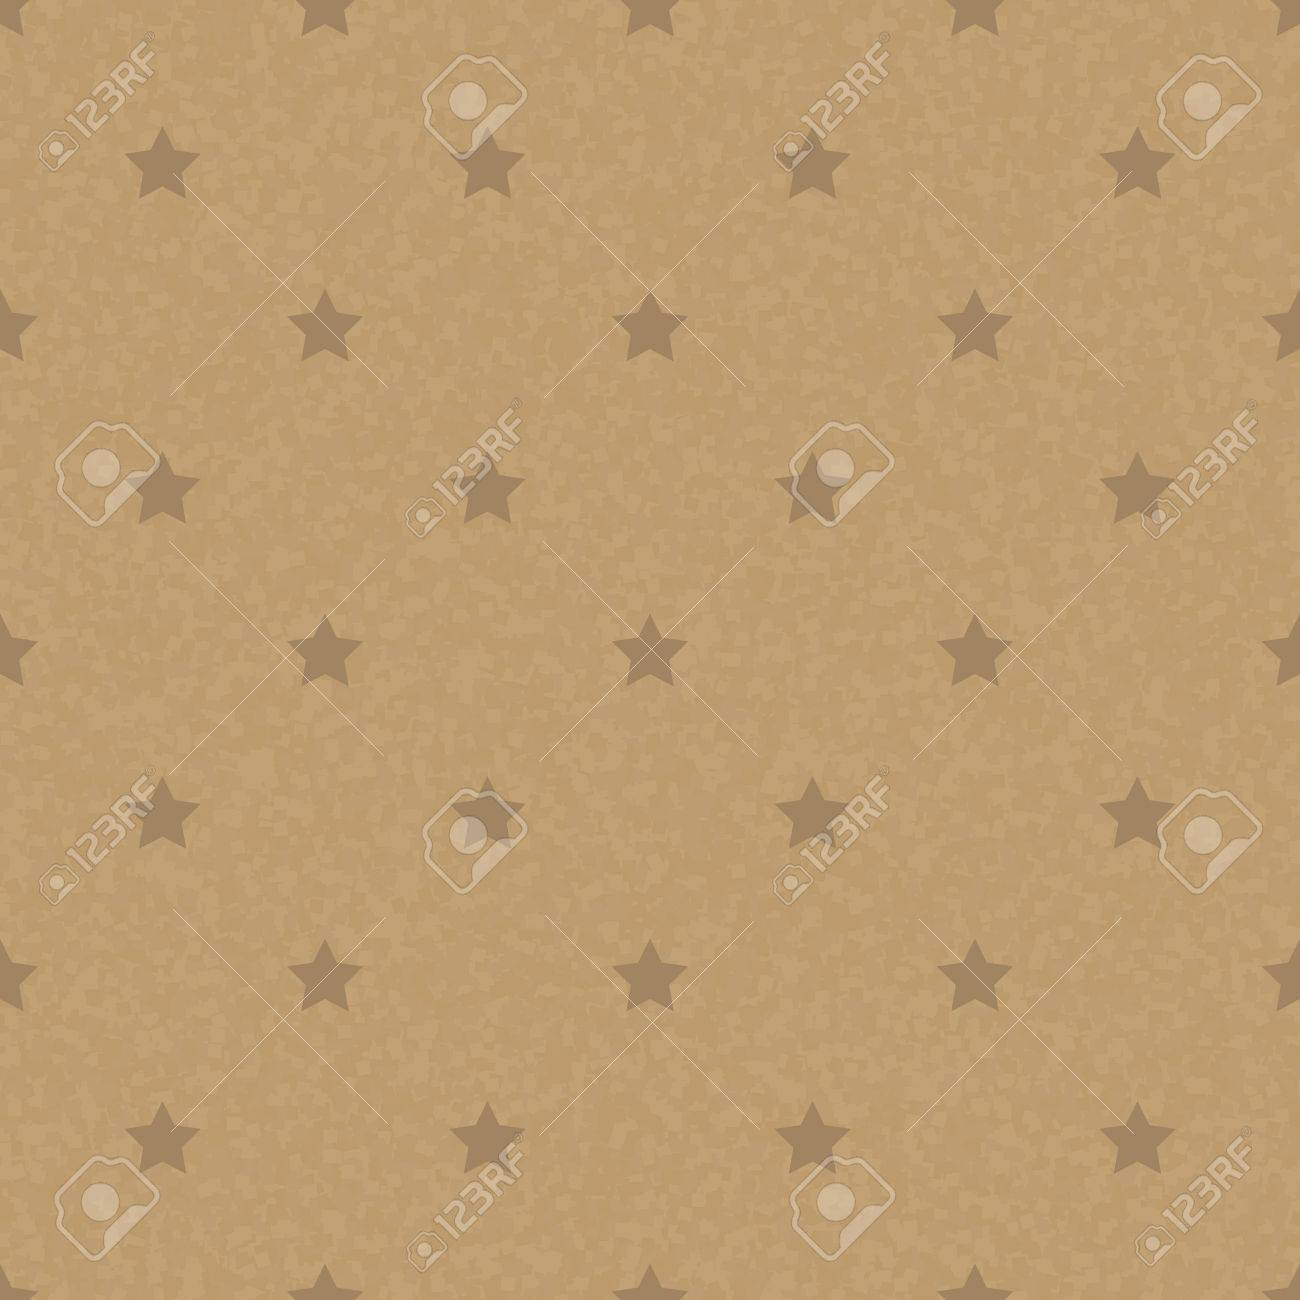 Kraft recycled paper texture vector seamless craftpaper with star kraft recycled paper texture vector seamless craftpaper with star subtle pattern overlay handmade designer jeuxipadfo Image collections